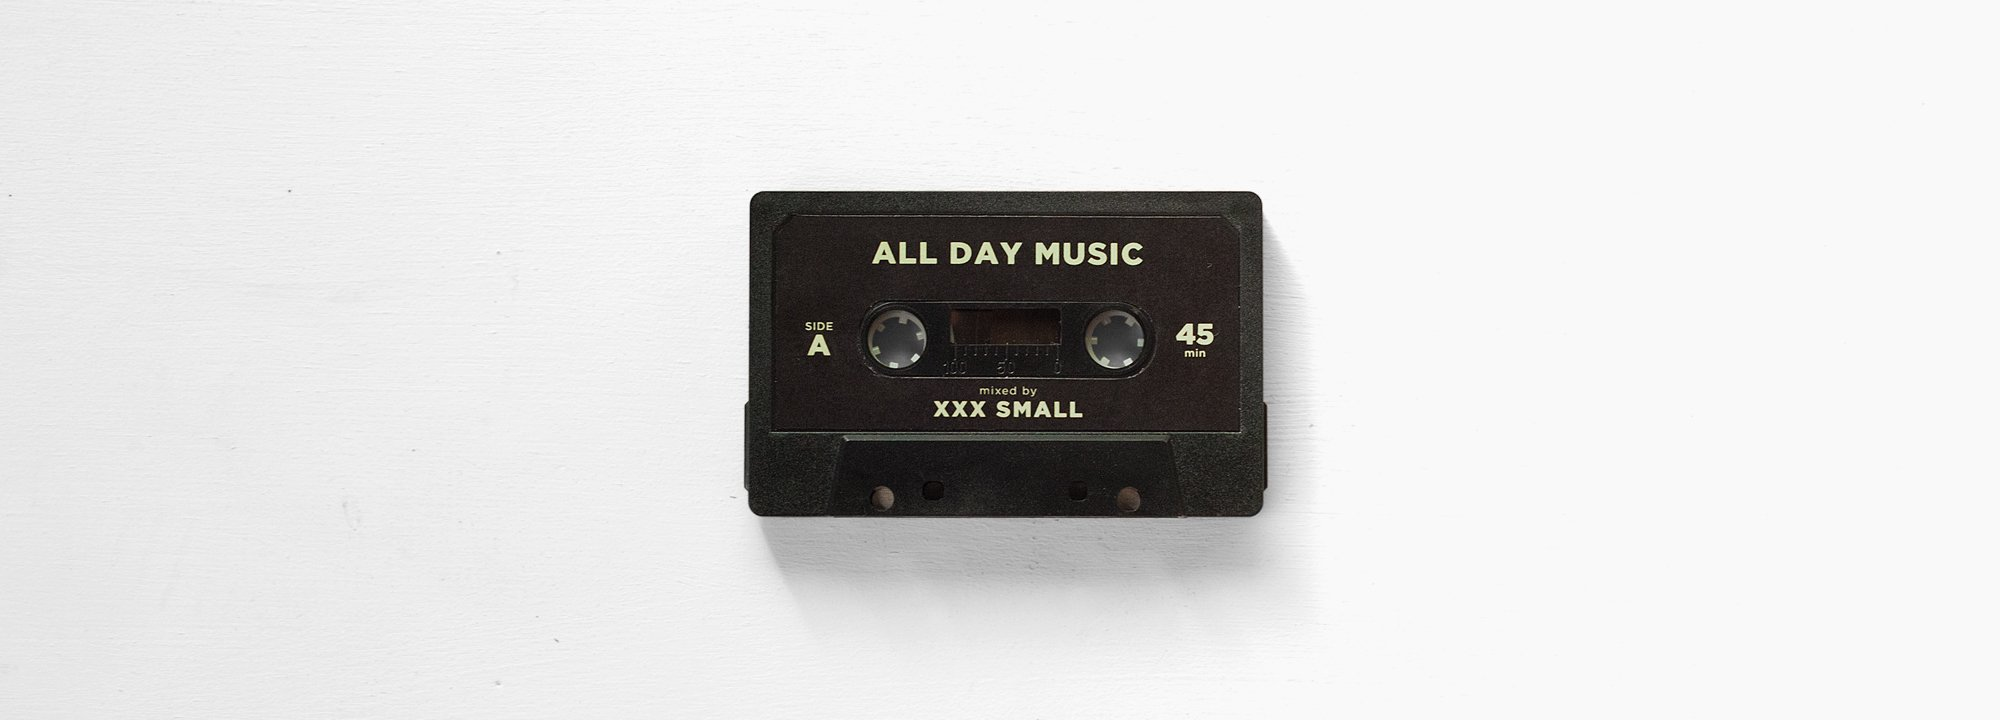 ALL DAY MUSIC #1 - Mixed by XXXSMALL